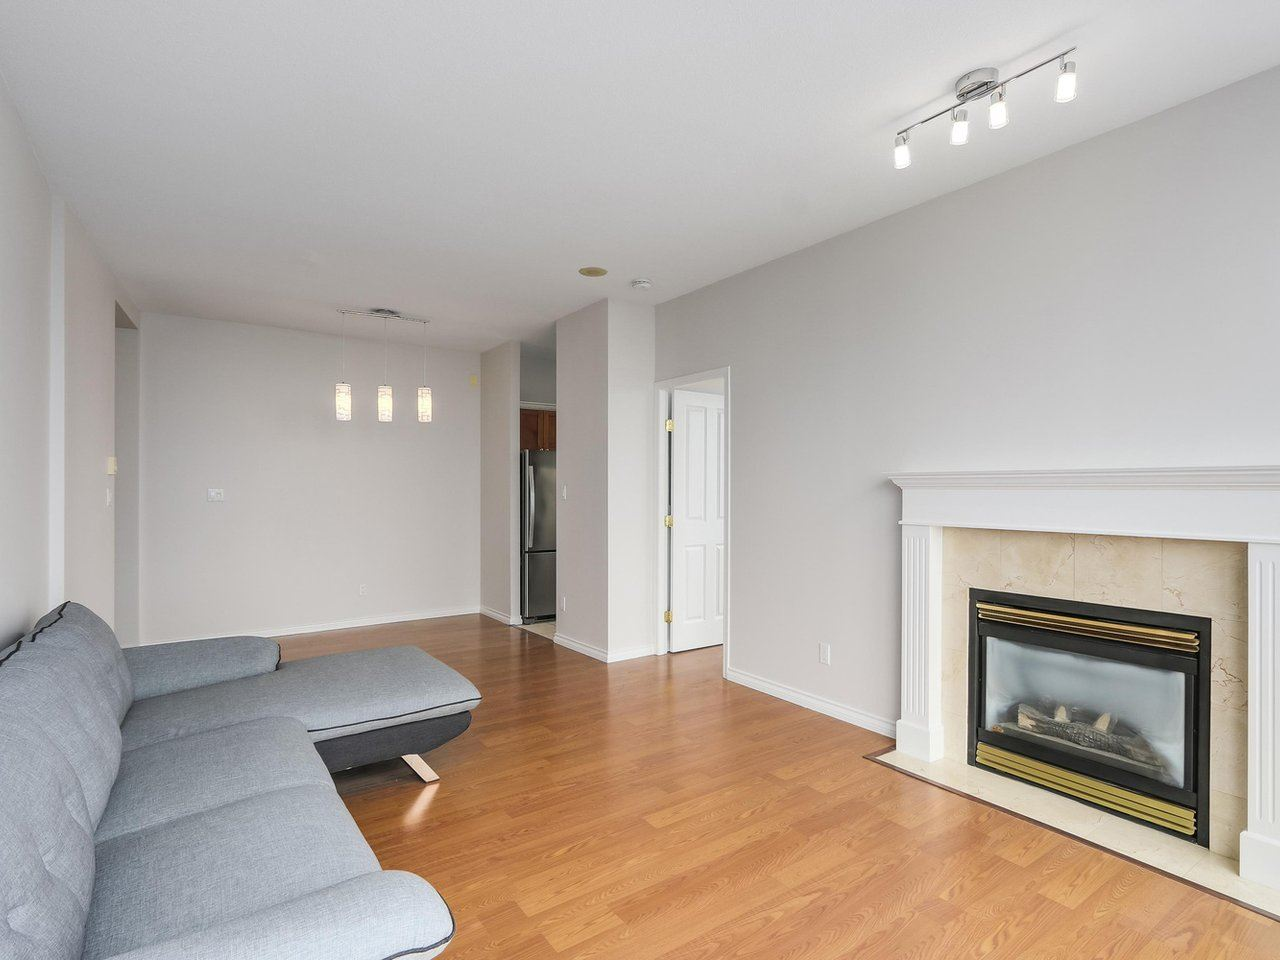 Condo Apartment at 1903 6837 STATION HILL DRIVE, Unit 1903, Burnaby South, British Columbia. Image 7